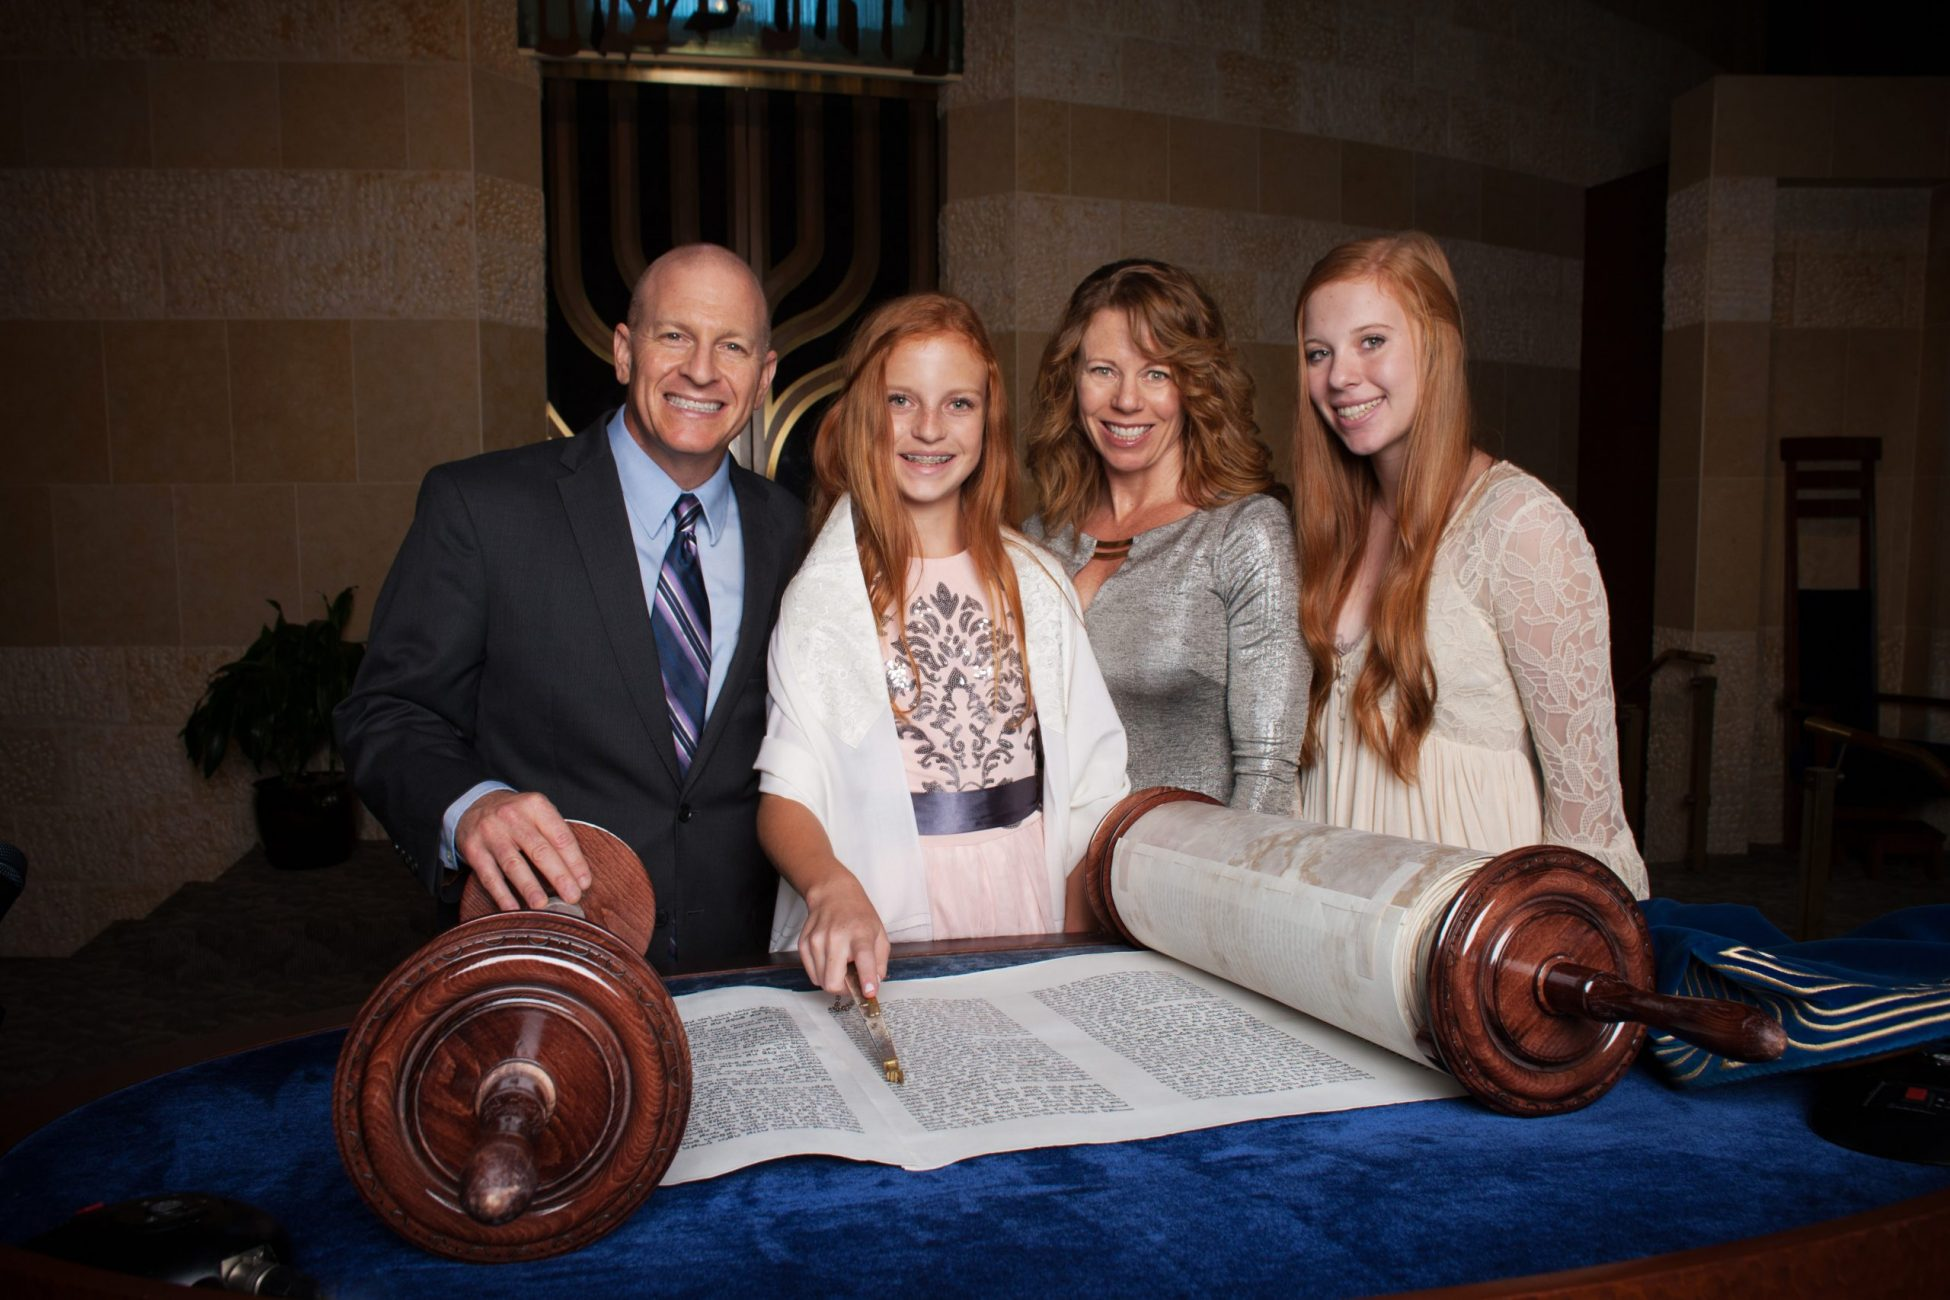 San Diego bat mitzvah girl at temple with her family